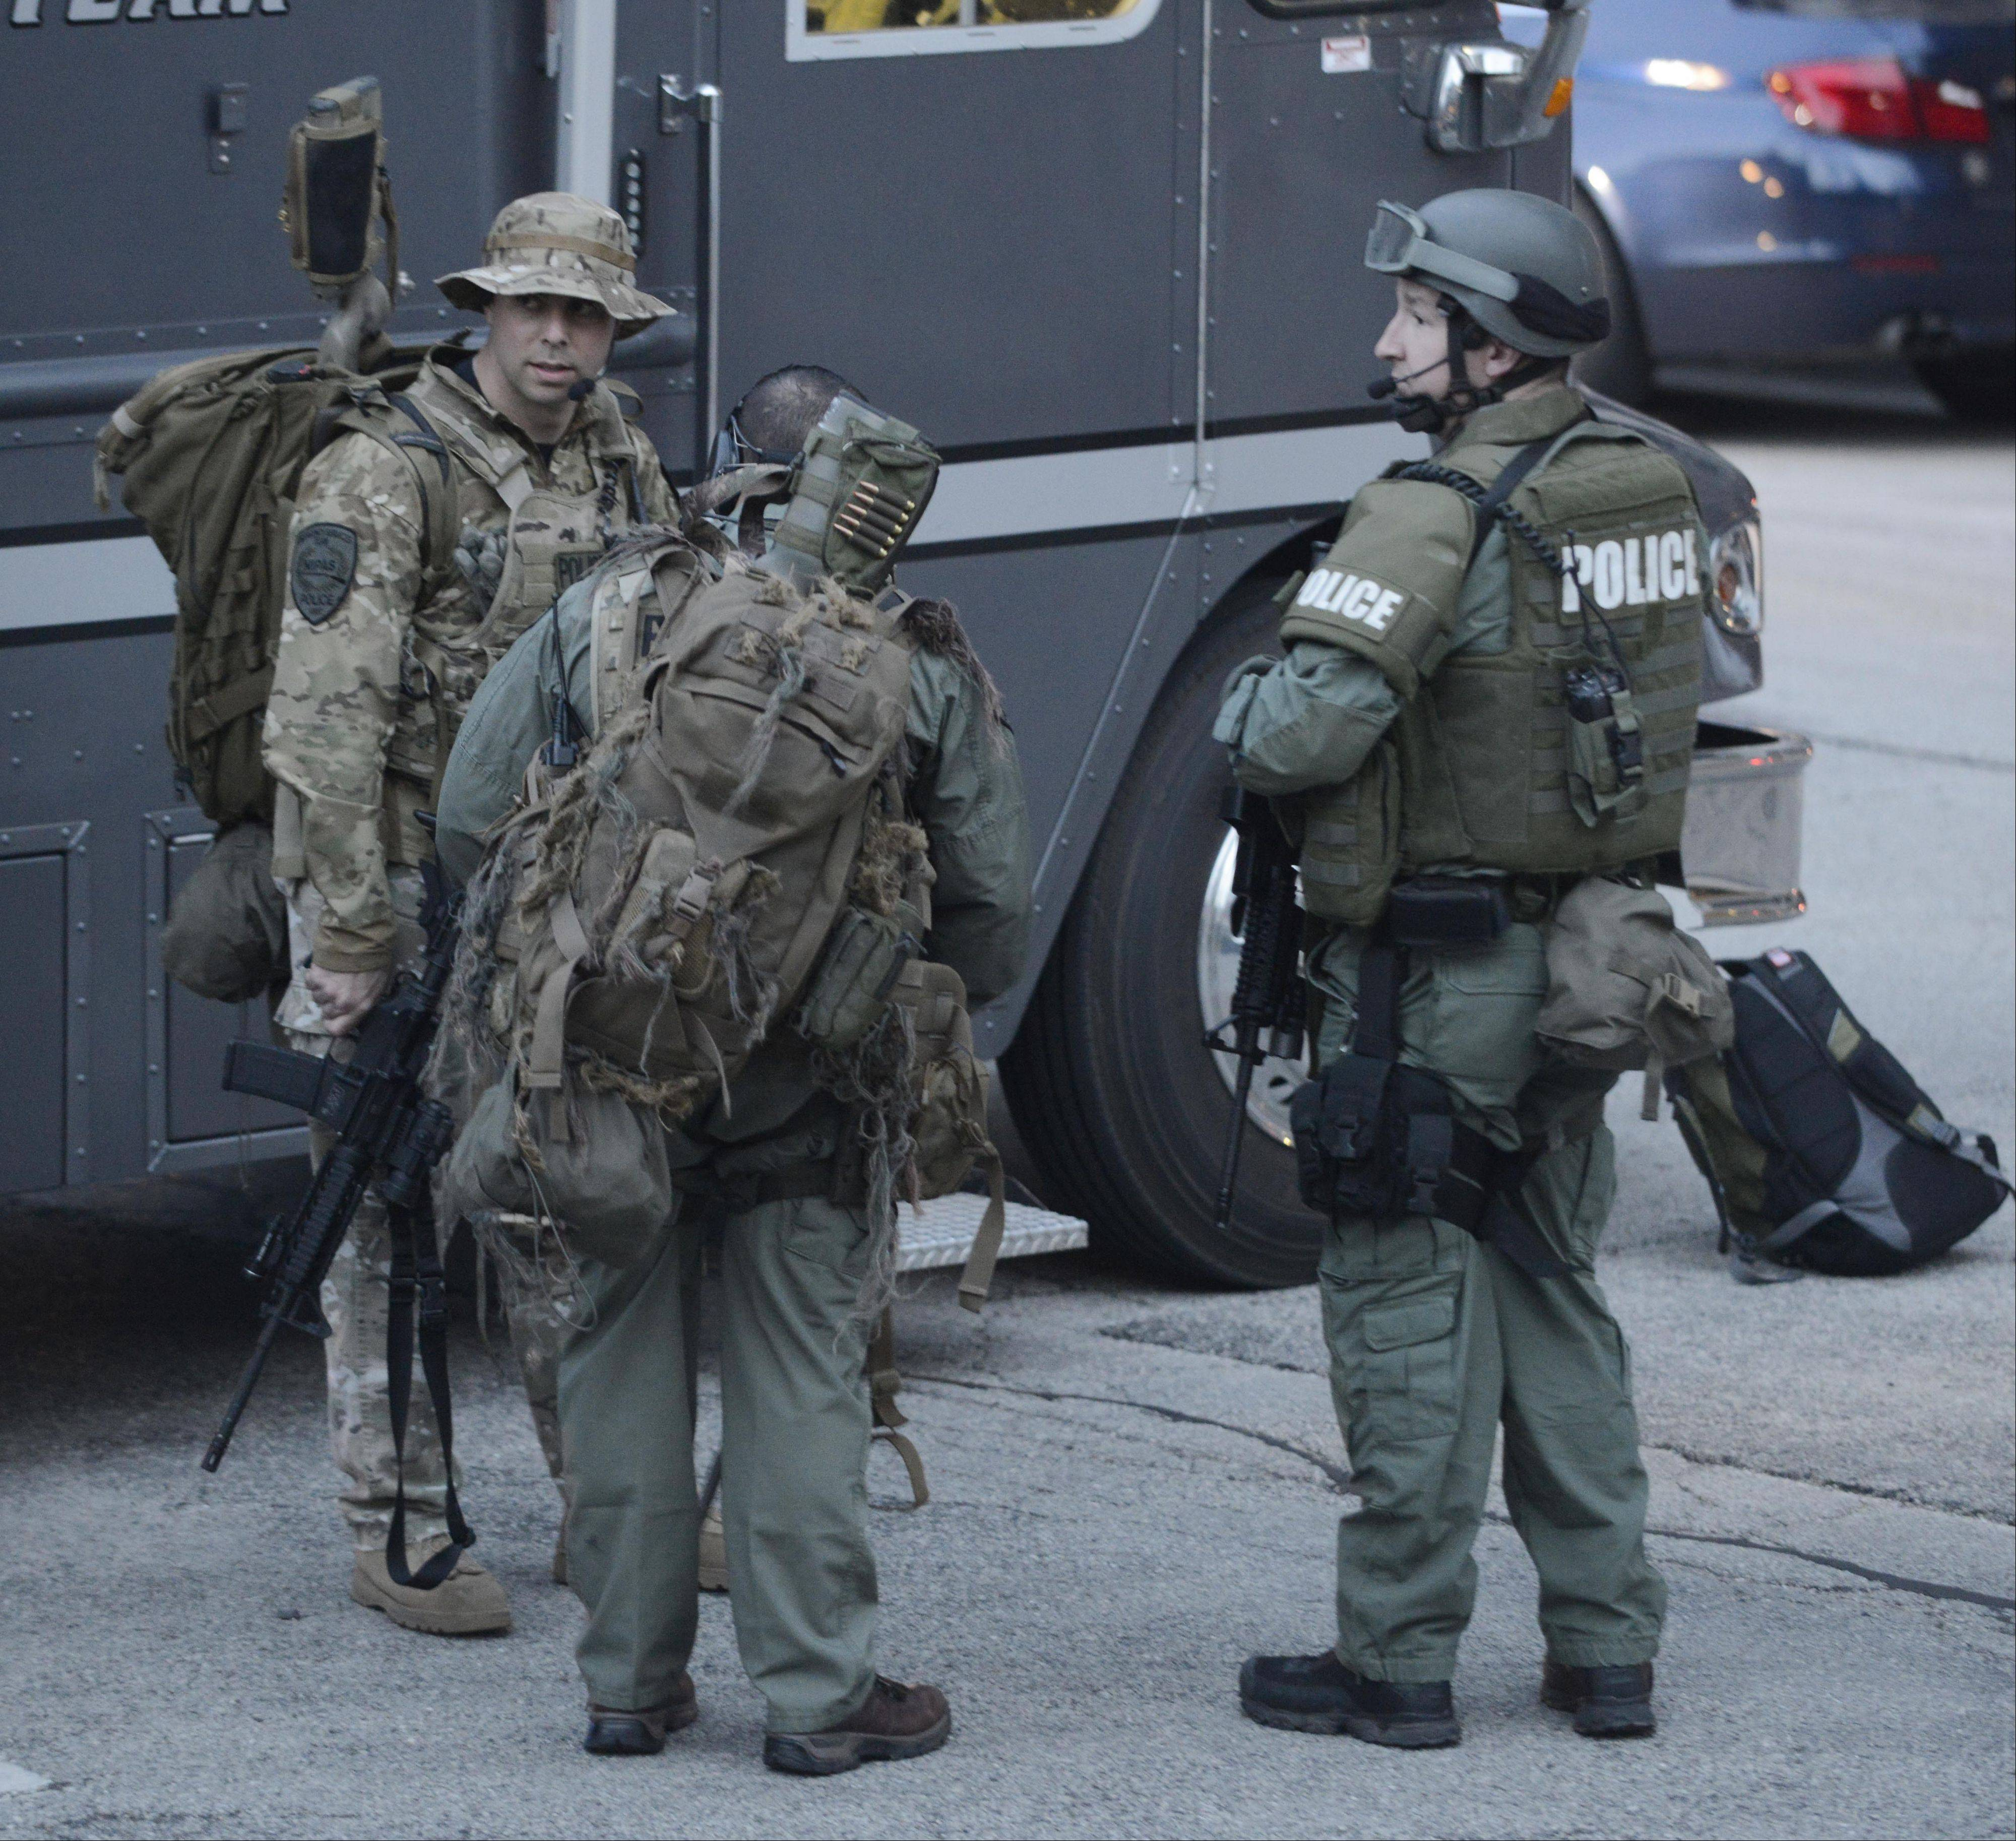 None hurt in Arlington Heights police standoff